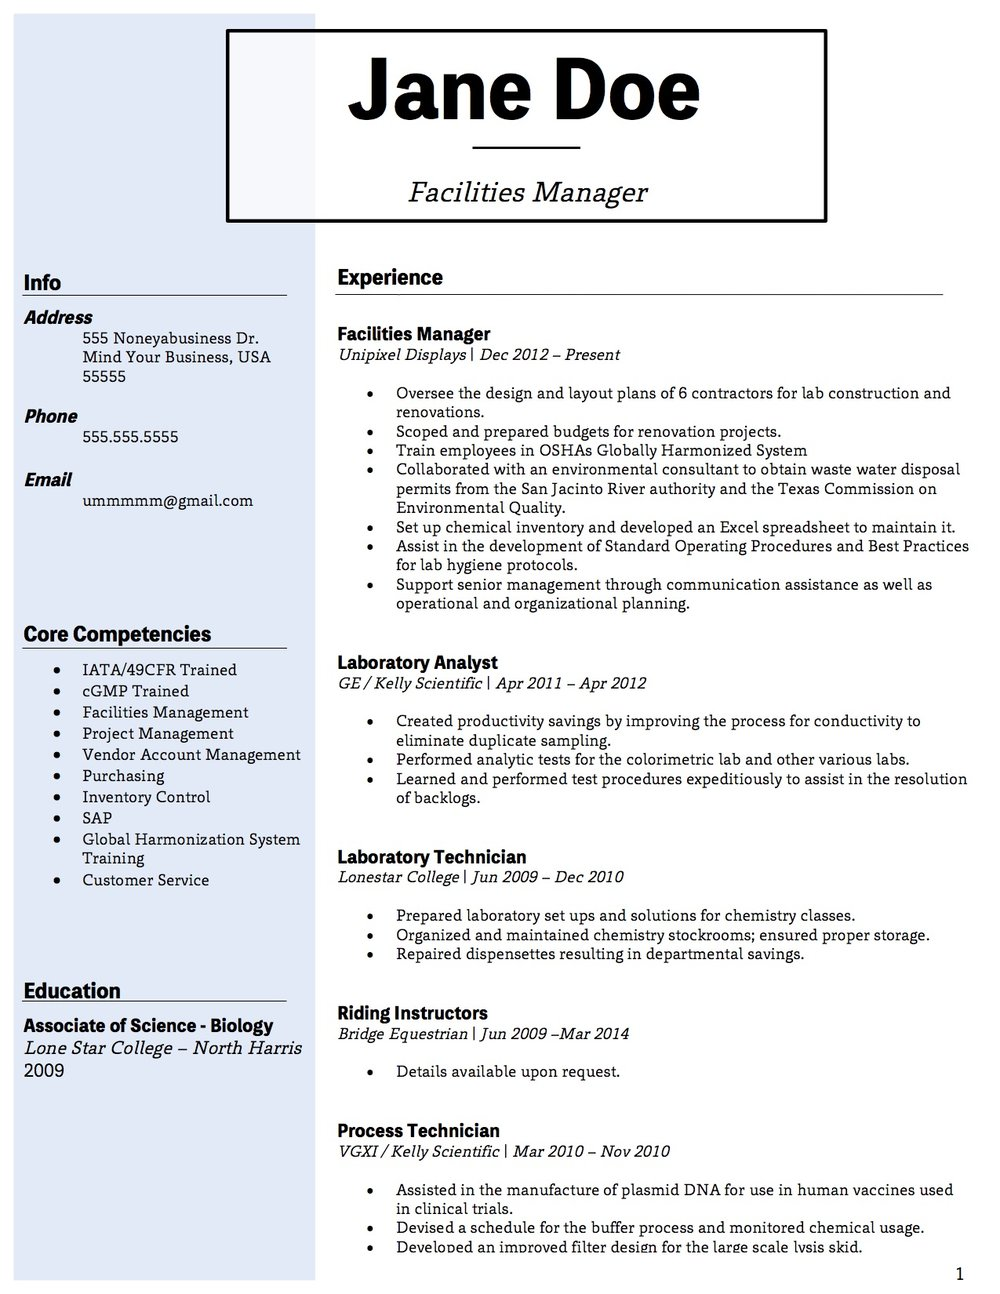 Client Resume #6 pg 1. Click to enlarge.